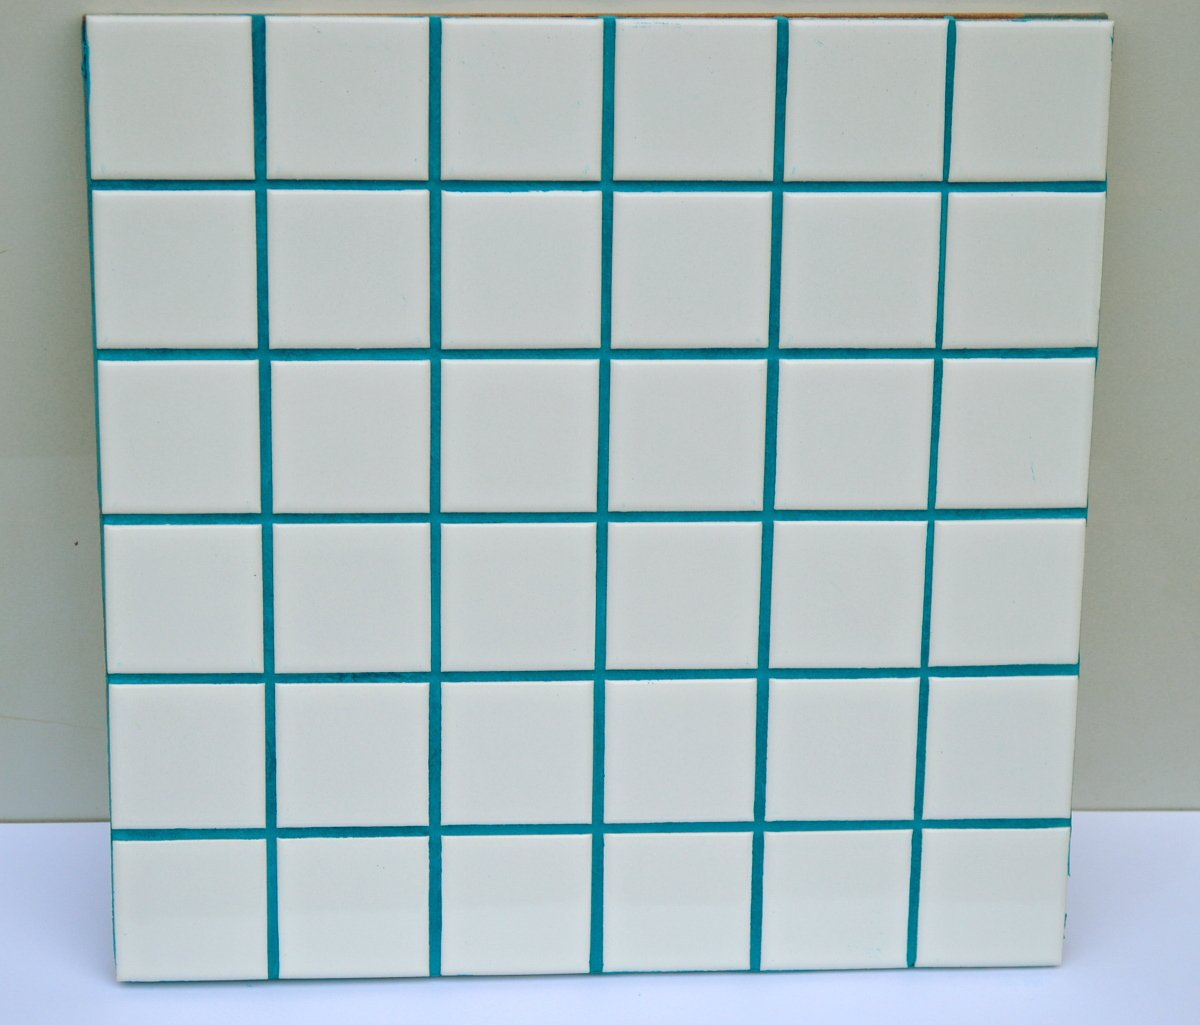 St. Martins Teal Unsanded Tile Grout - 5 lbs - with Teal Pigment in The Mix by Grout360 (Image #1)